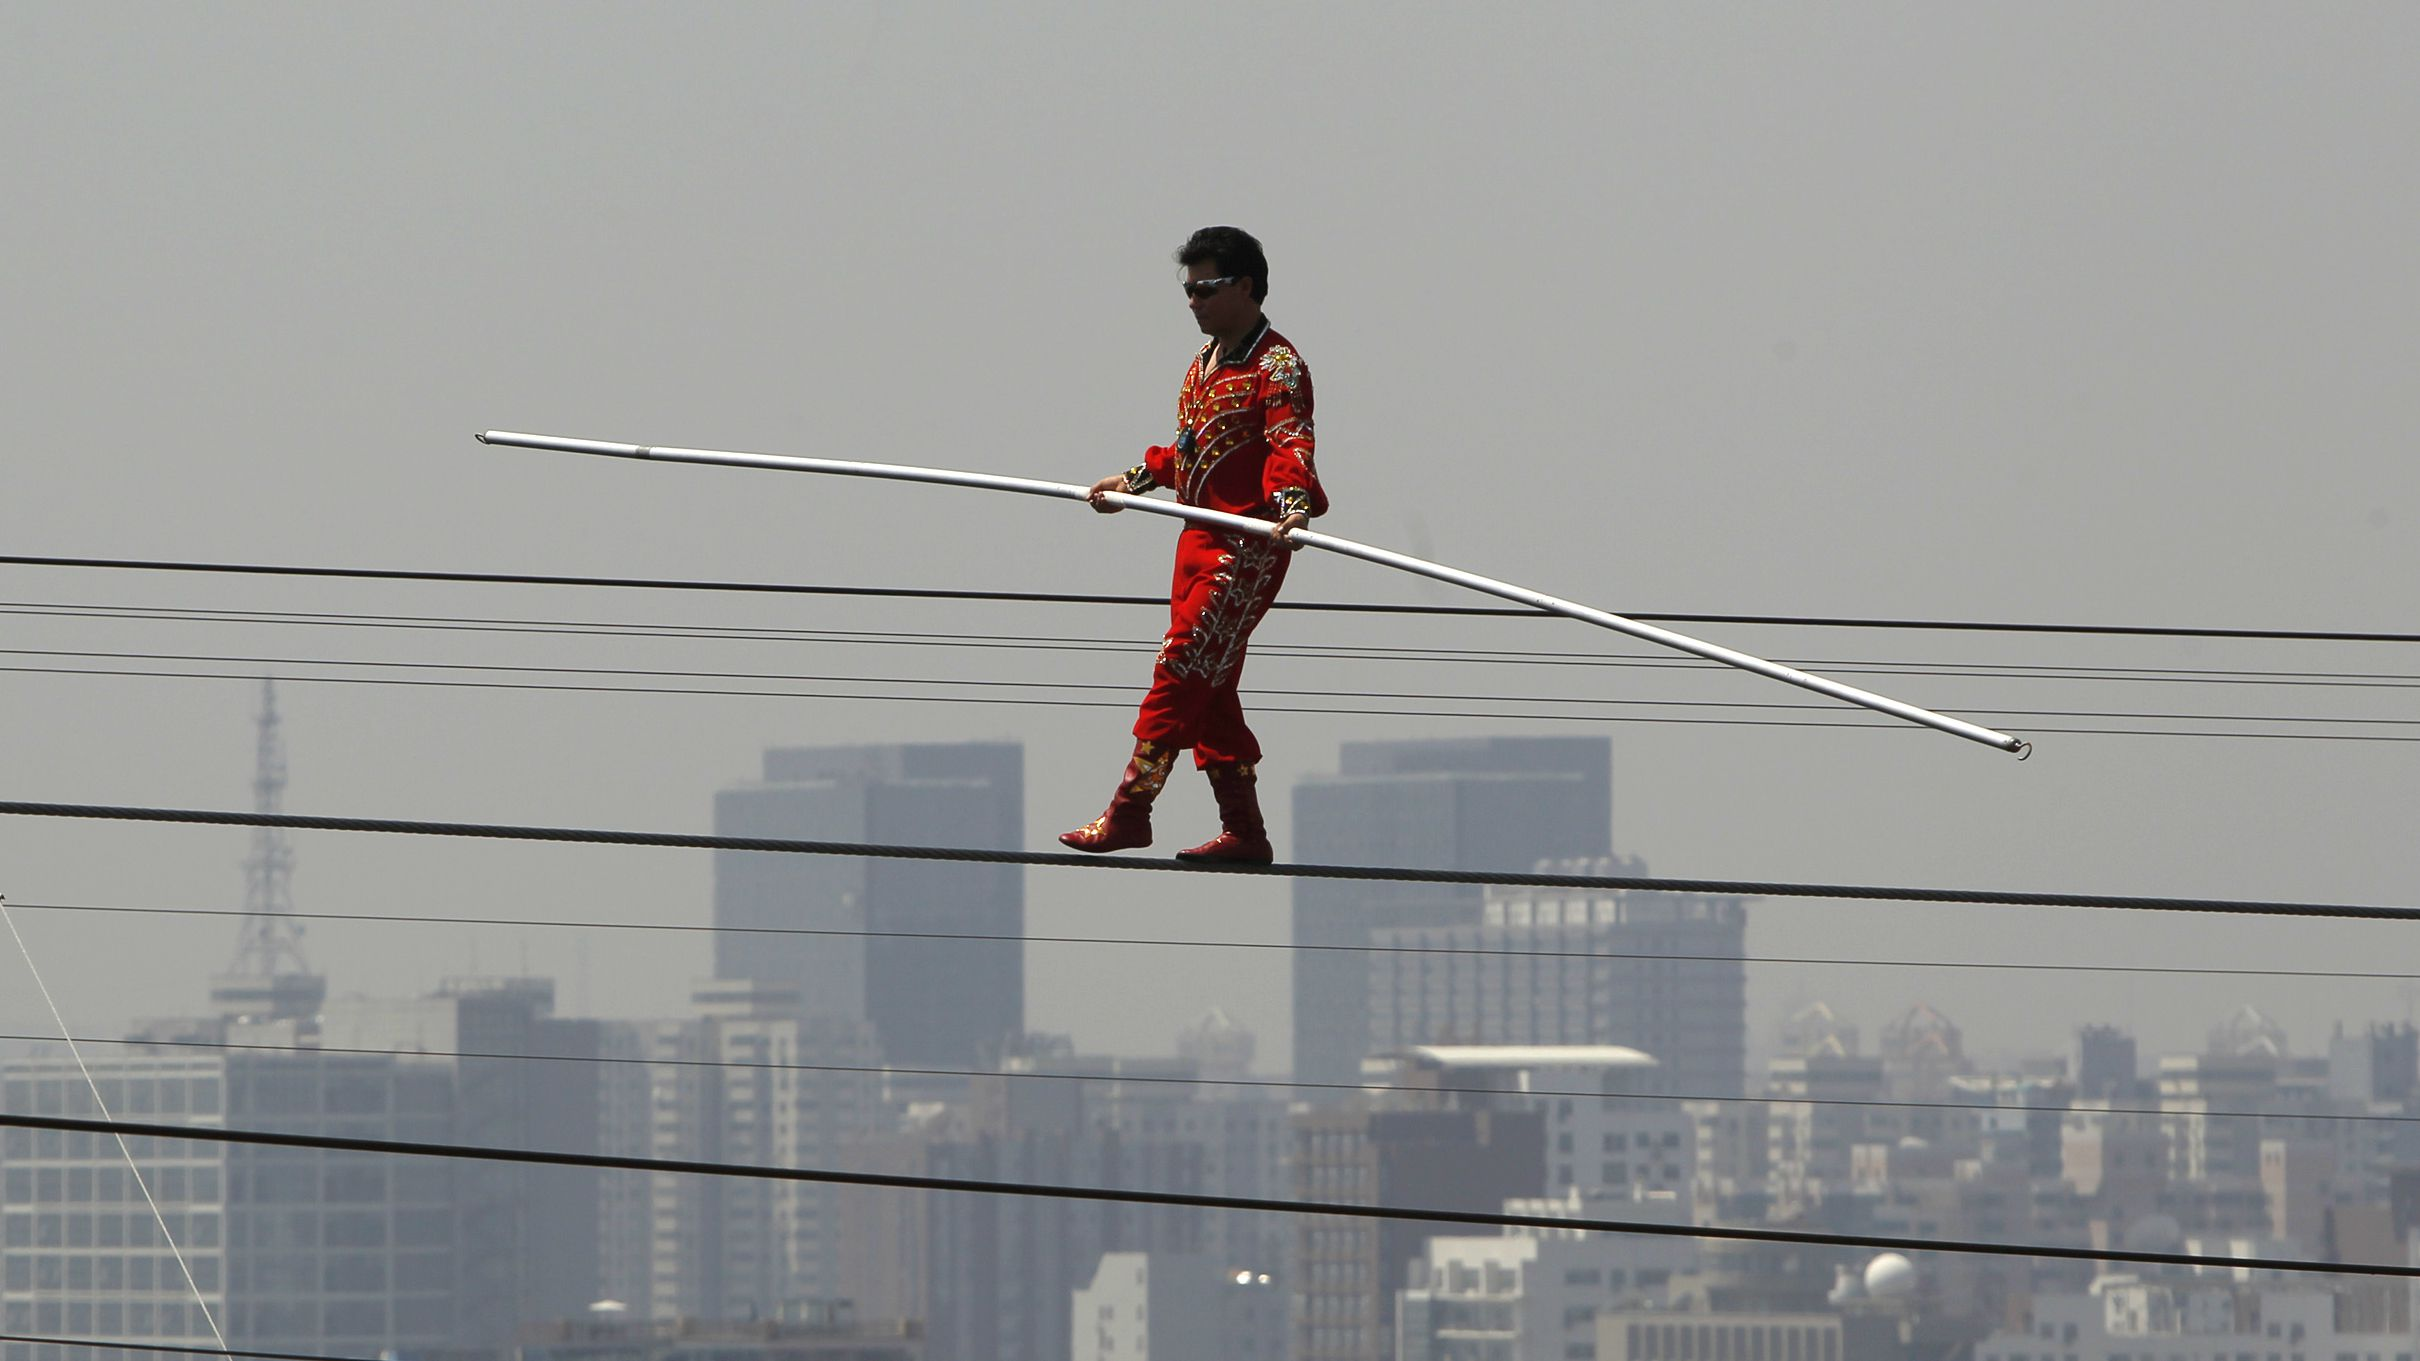 """Adili Wuxor, known as """"Prince of the Tightrope"""", walks the tightrope above the """"Bird's Nest"""" Olympic stadium in Beijing July 2, 2010. Adili on Friday, completed his challenge to break the Guinness World Record for the longest period of time spent living and walking on a tightrope. Adili has been living in a cabin on the roof of the Bird's Nest for the past 60 days, spending 5 hours a day walking the tightrope,local media reported. REUTERS/Bobby Yip"""